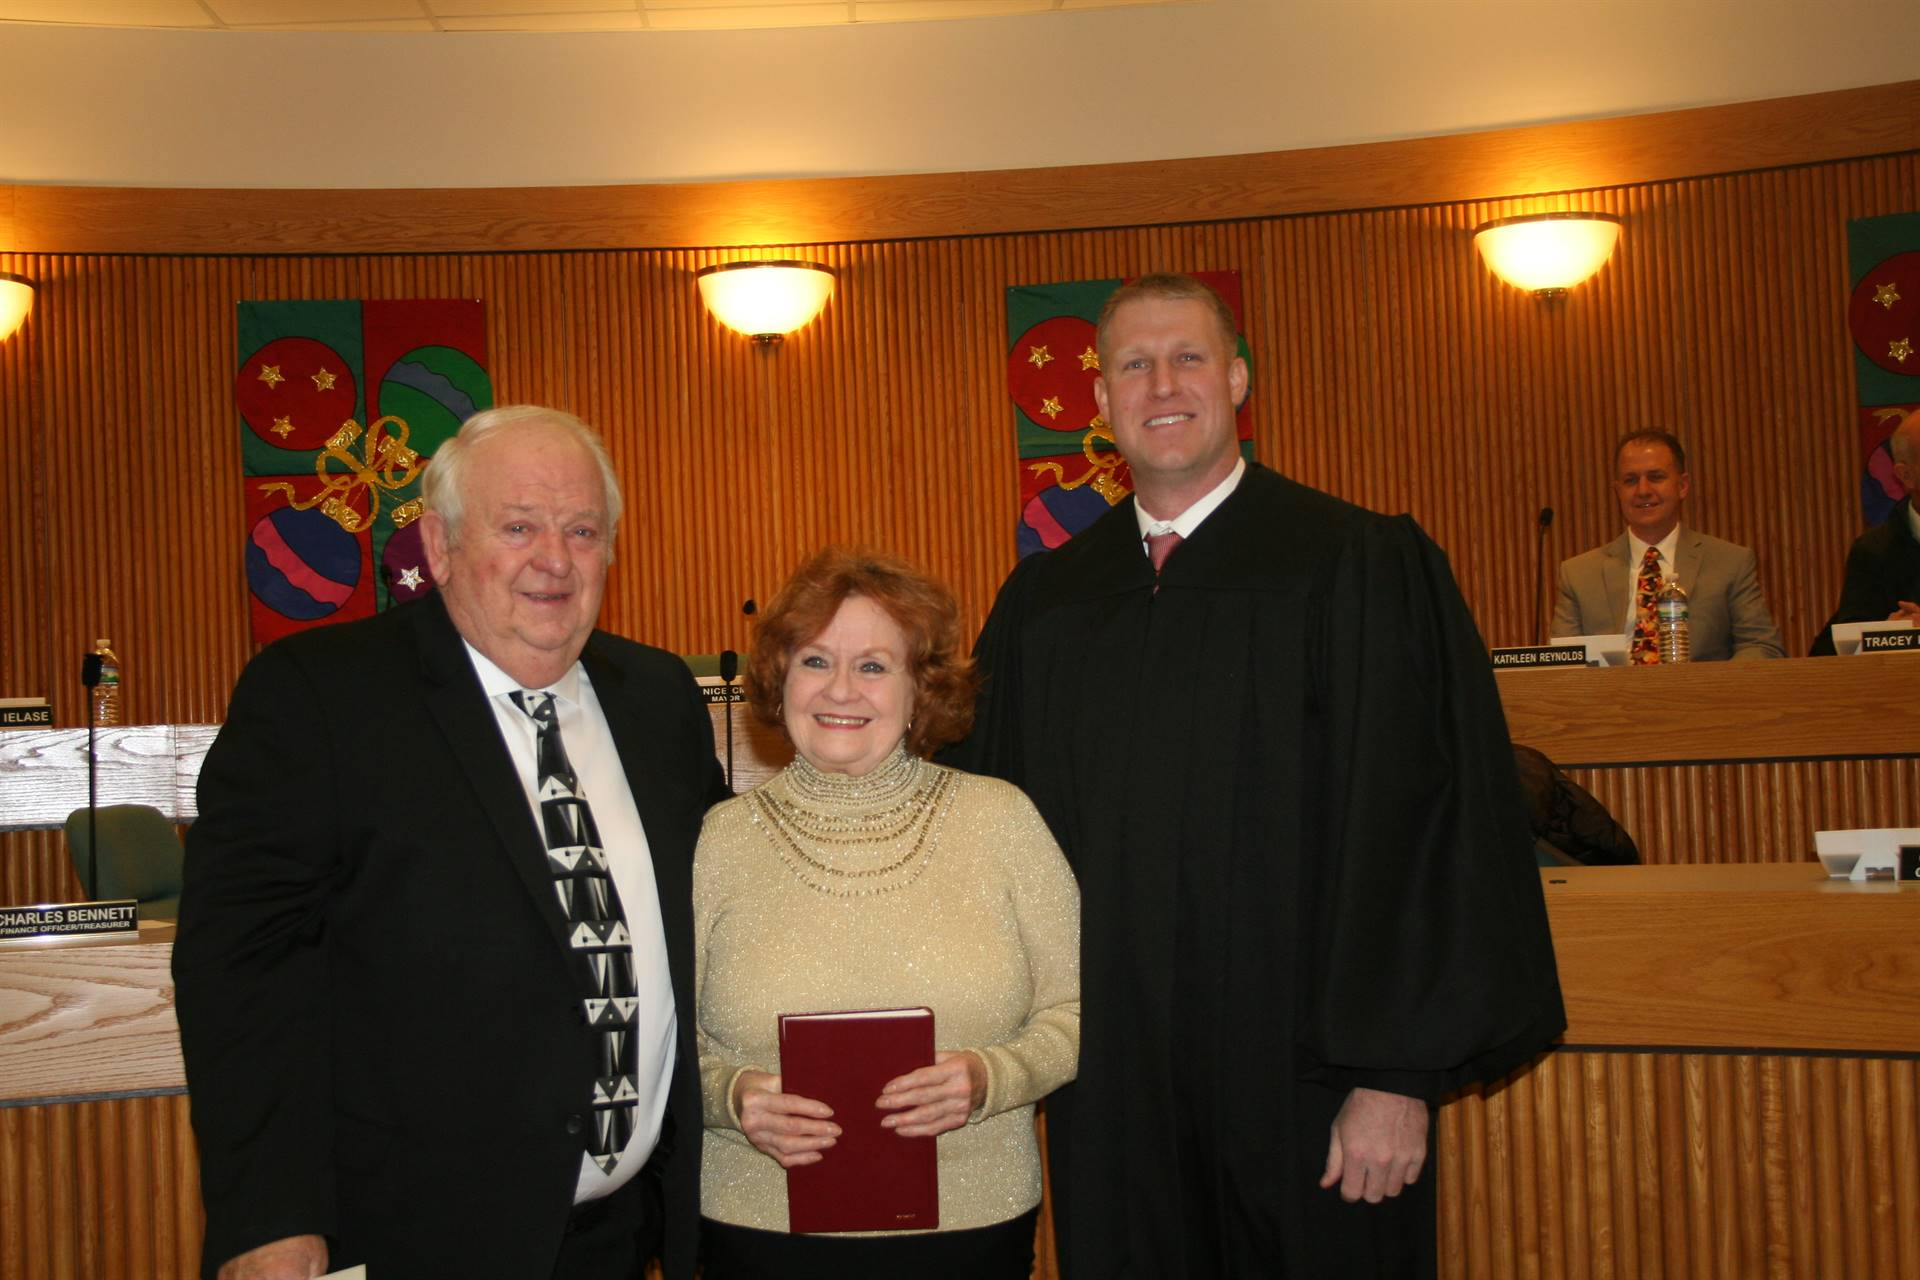 Francis and Joyce Sockman with Magisterial District Judge Mike Thatcher